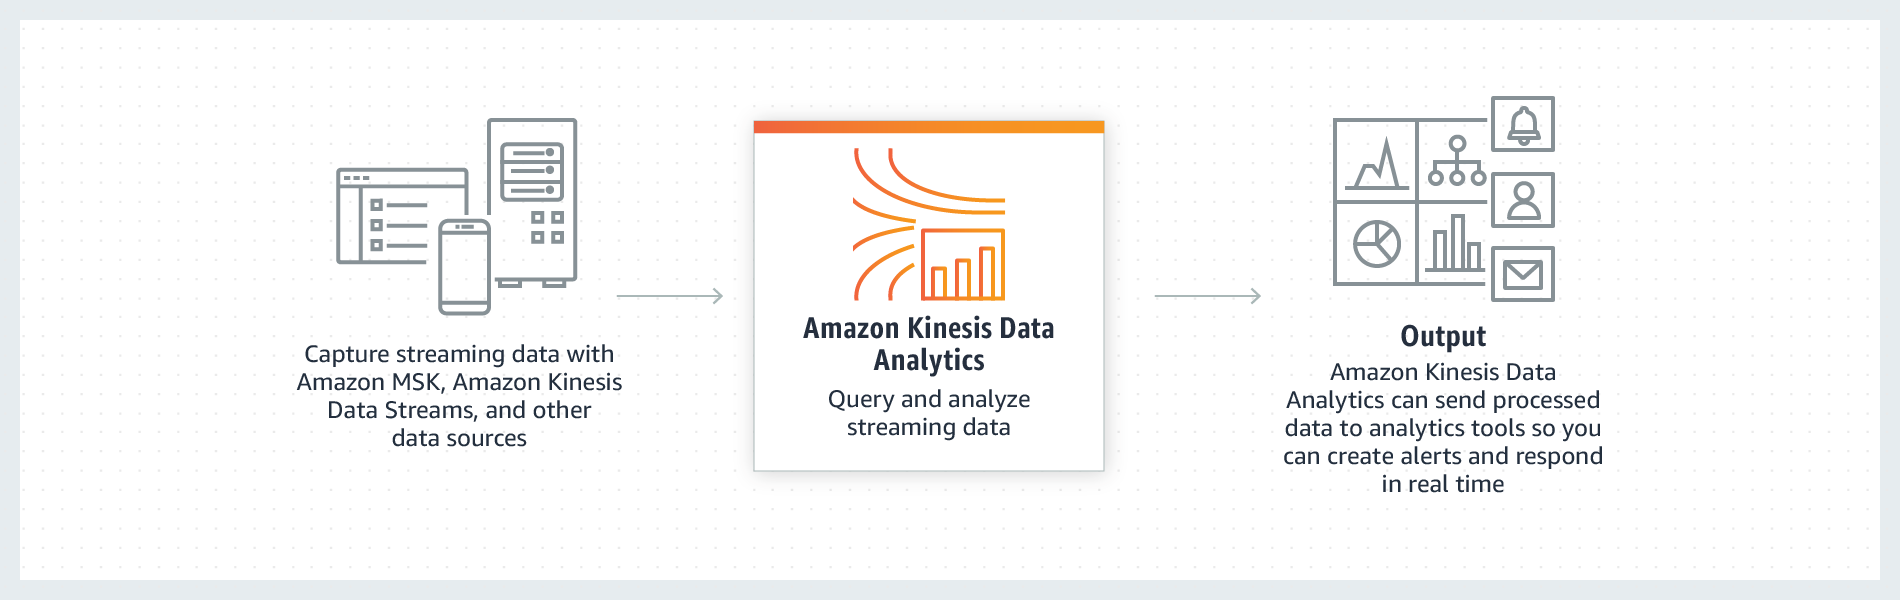 Amazon Kinesis Data Analytics の仕組み